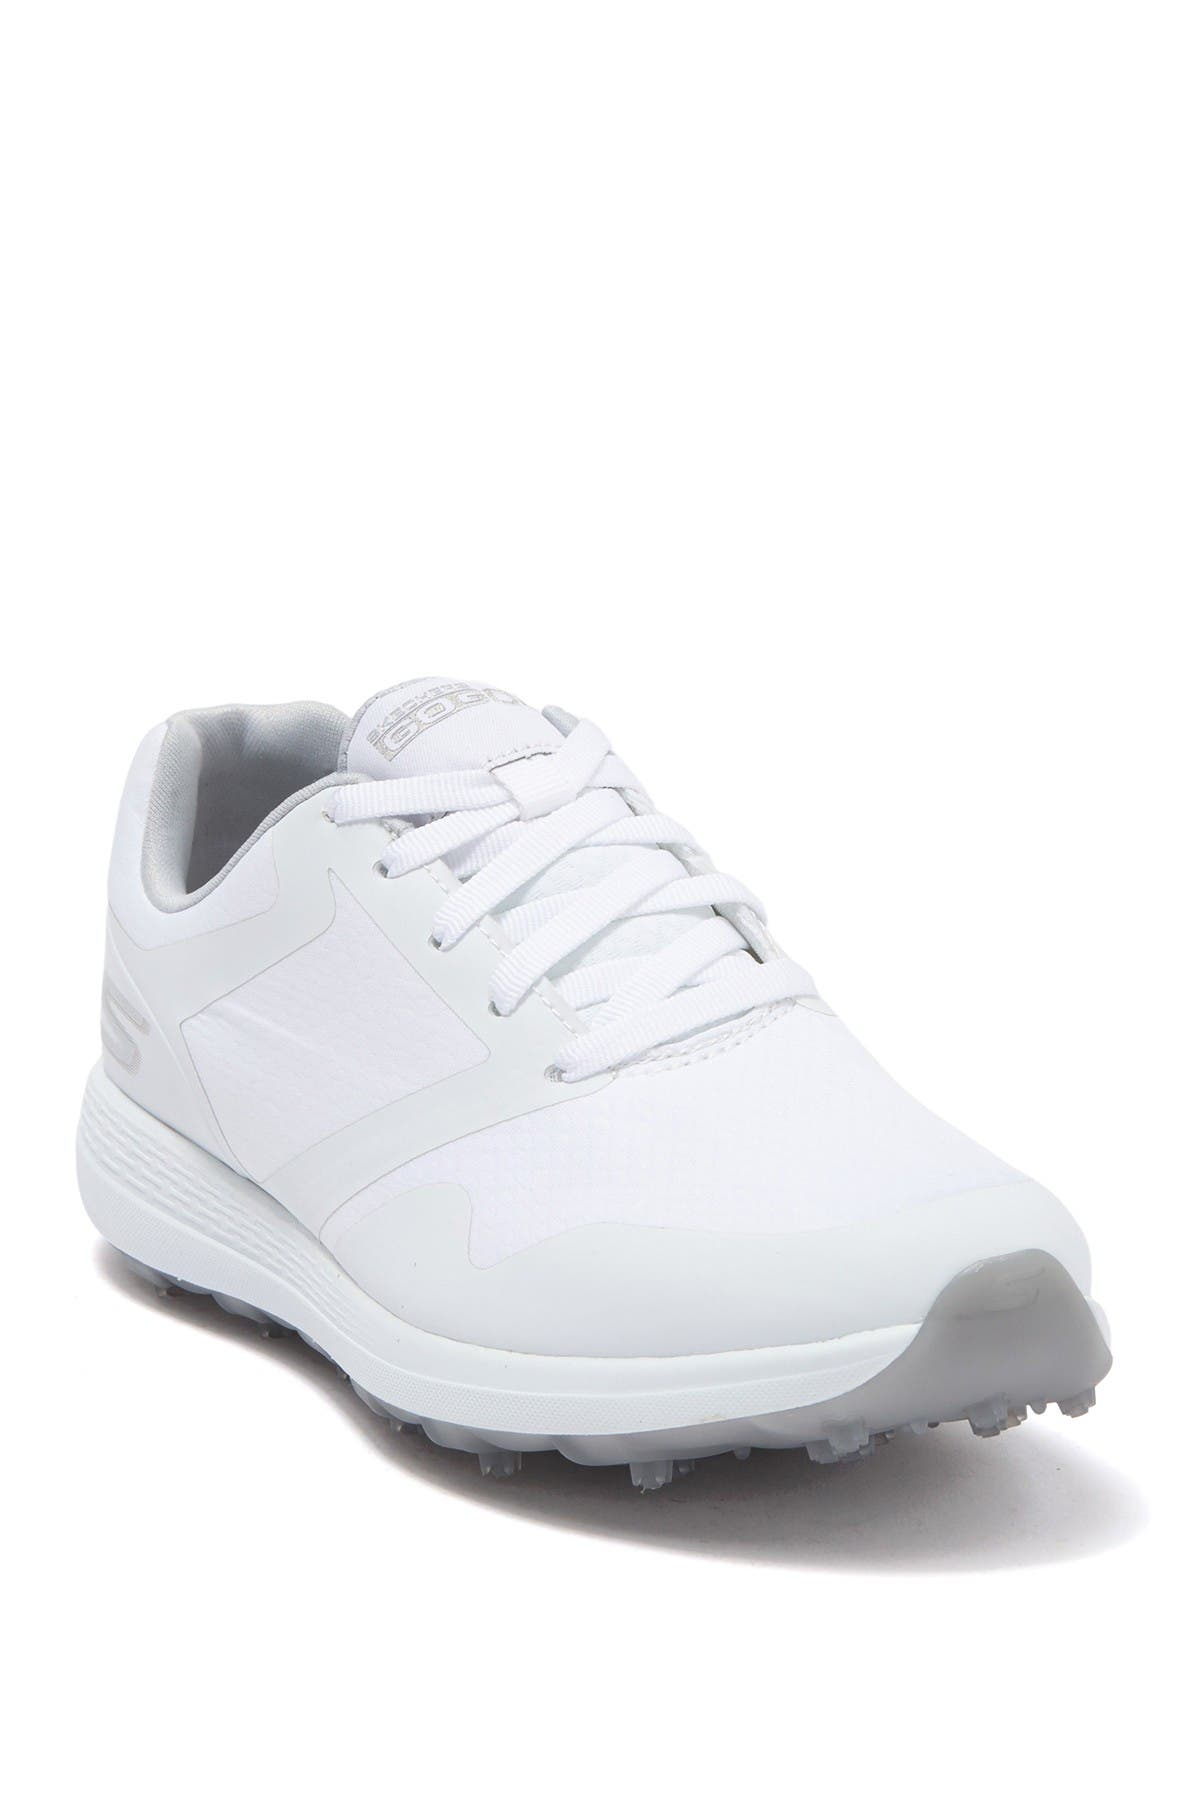 Image of Skechers Max Fade Golf Shoe